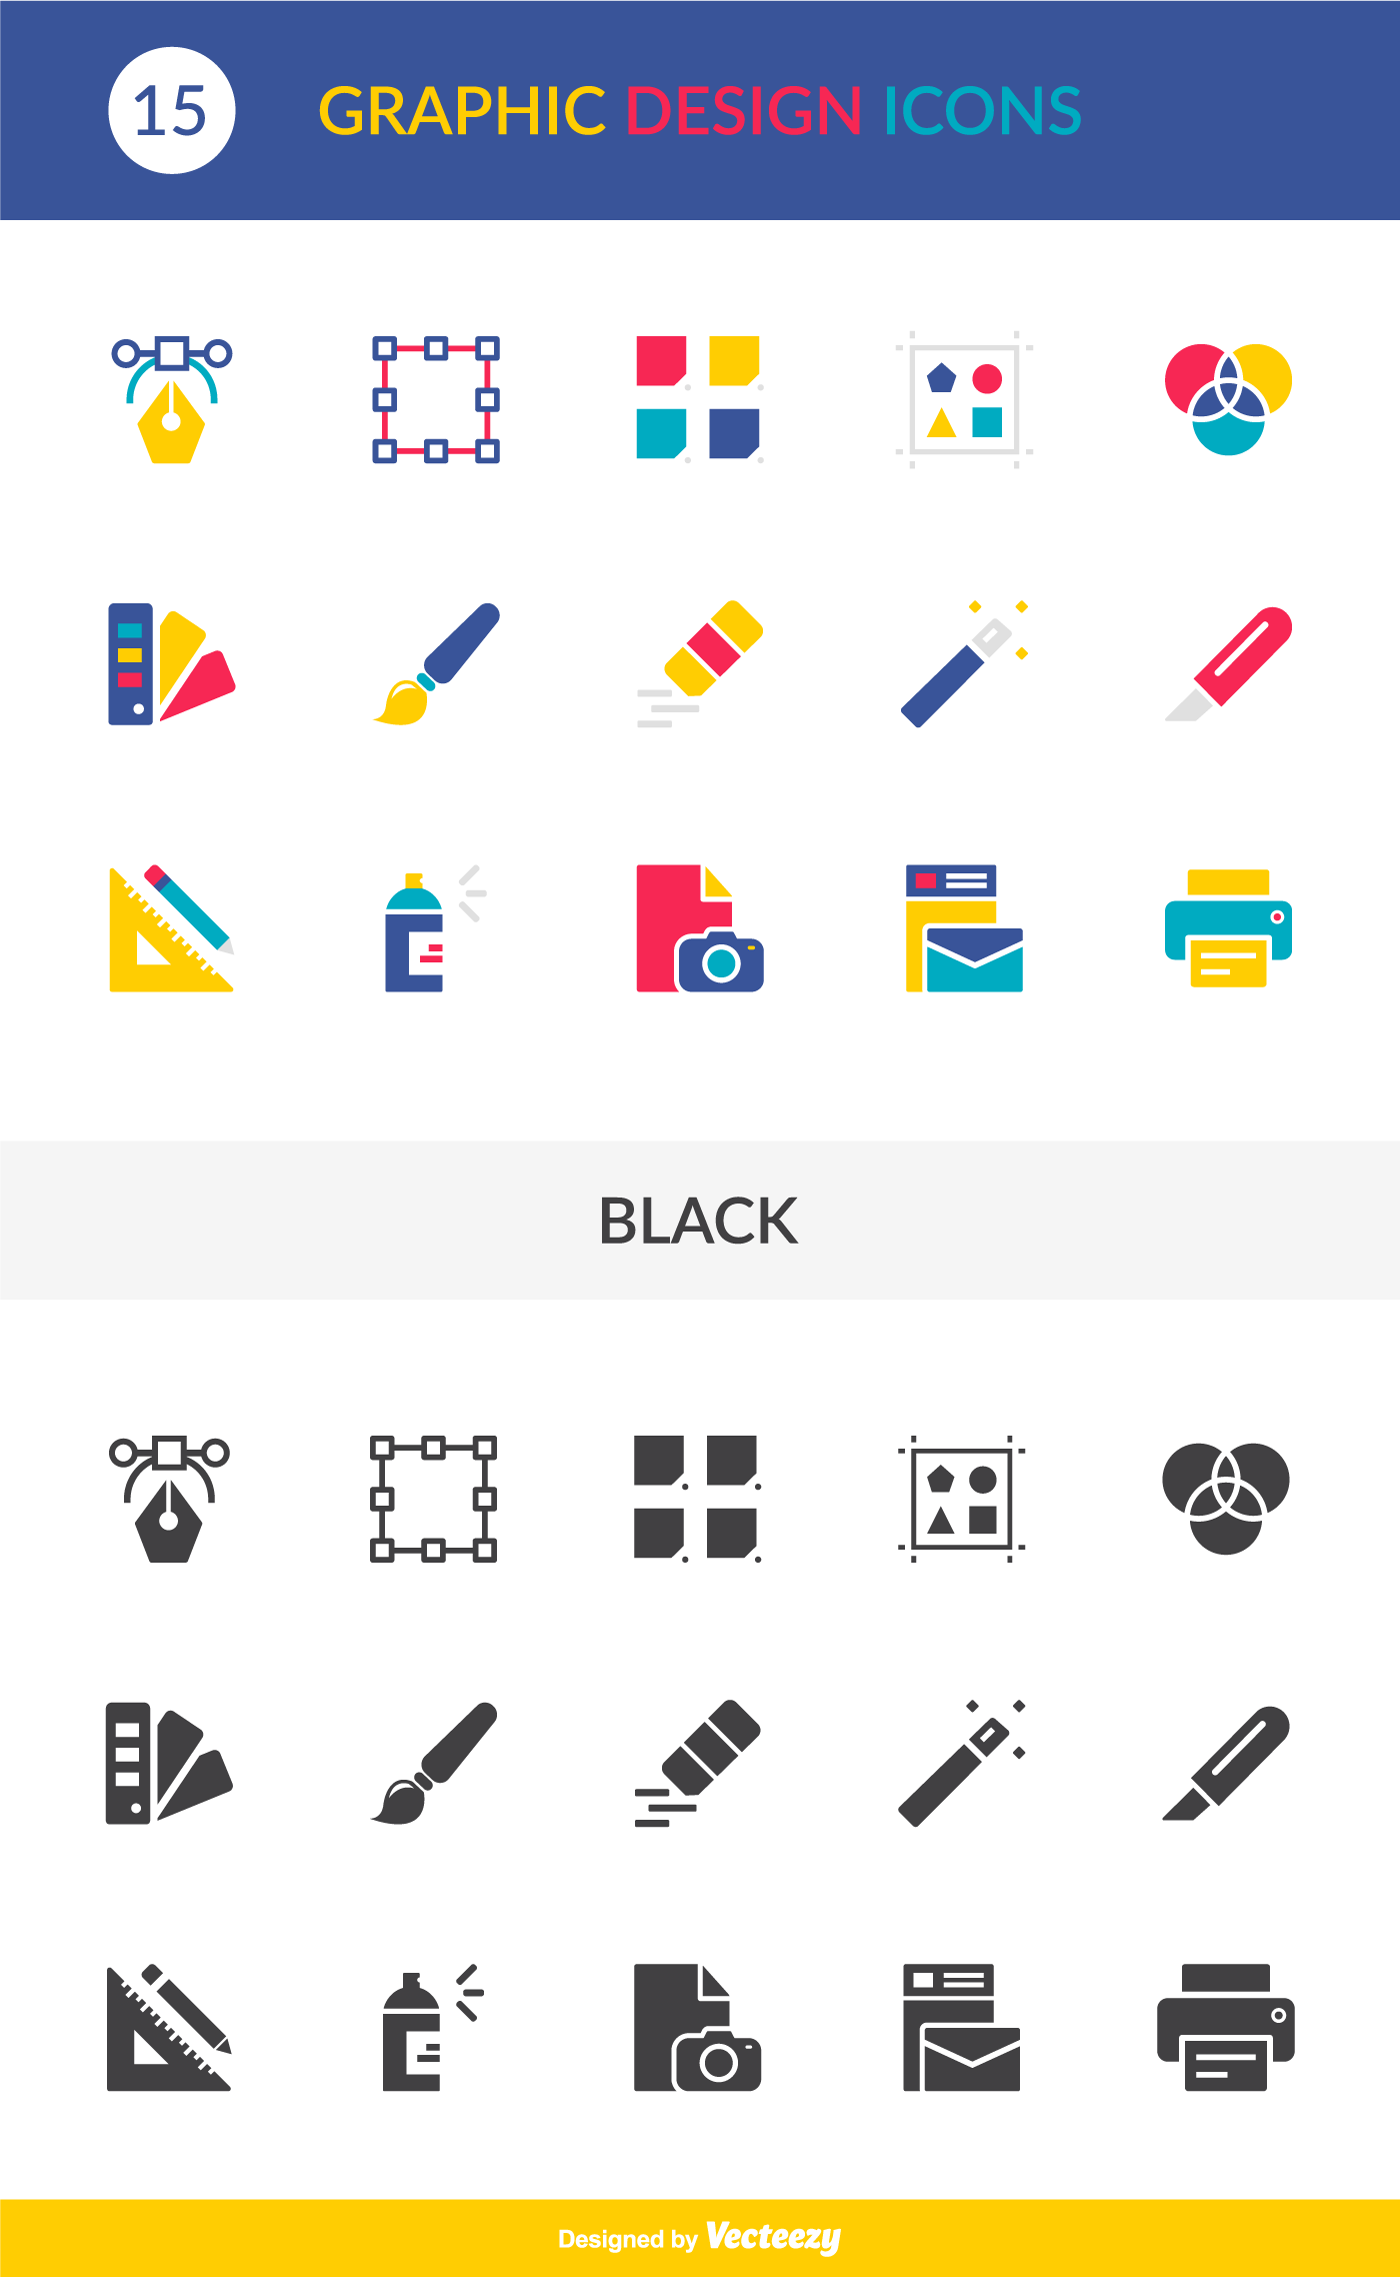 Free Graphic Design Vector Icon Pack